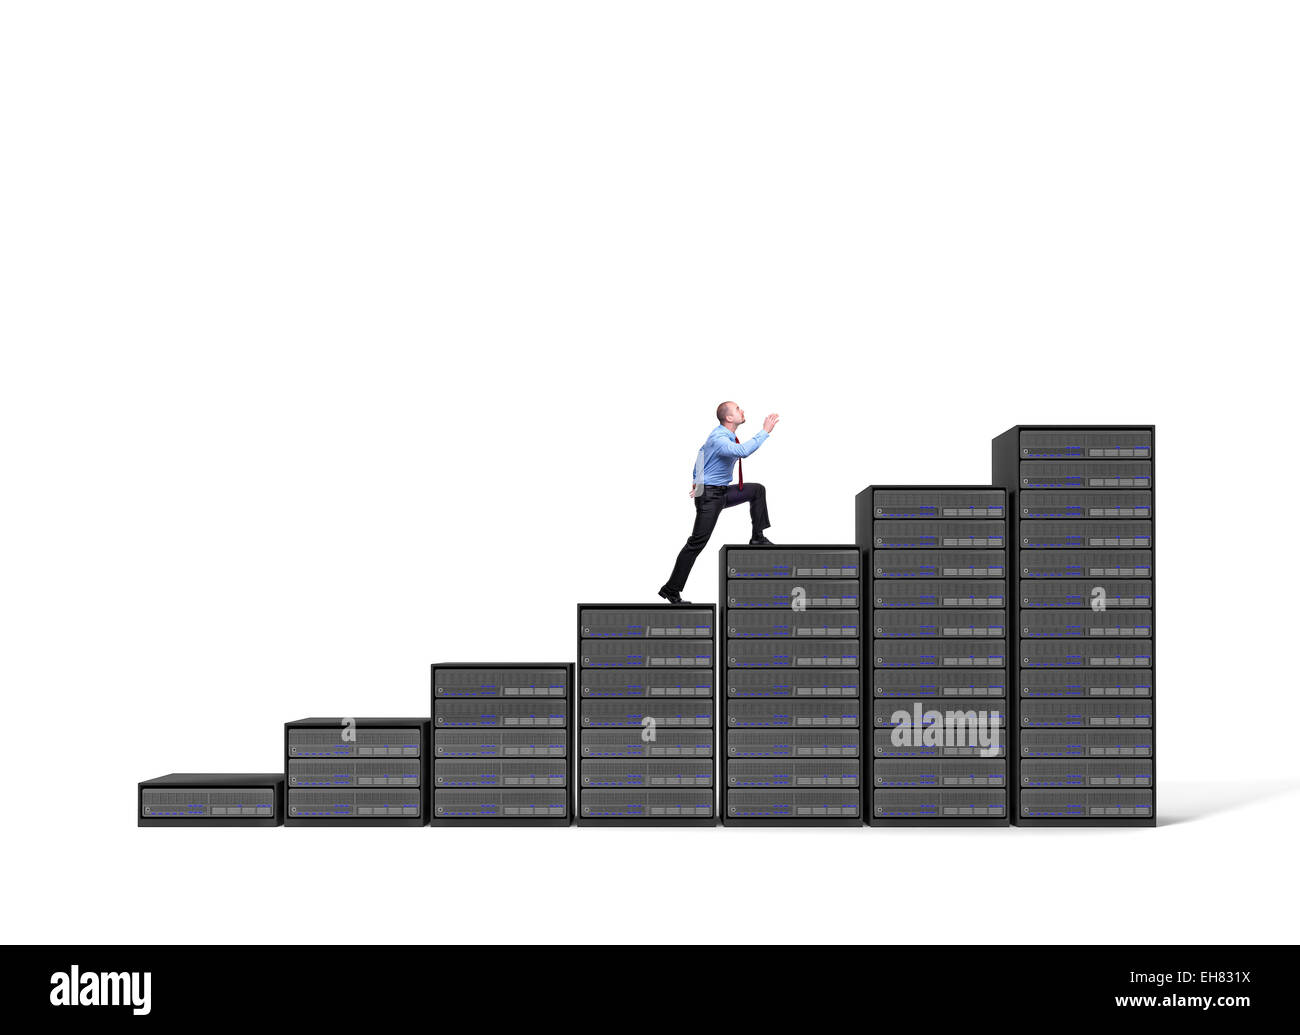 businessman and server stair 3d background - Stock Image